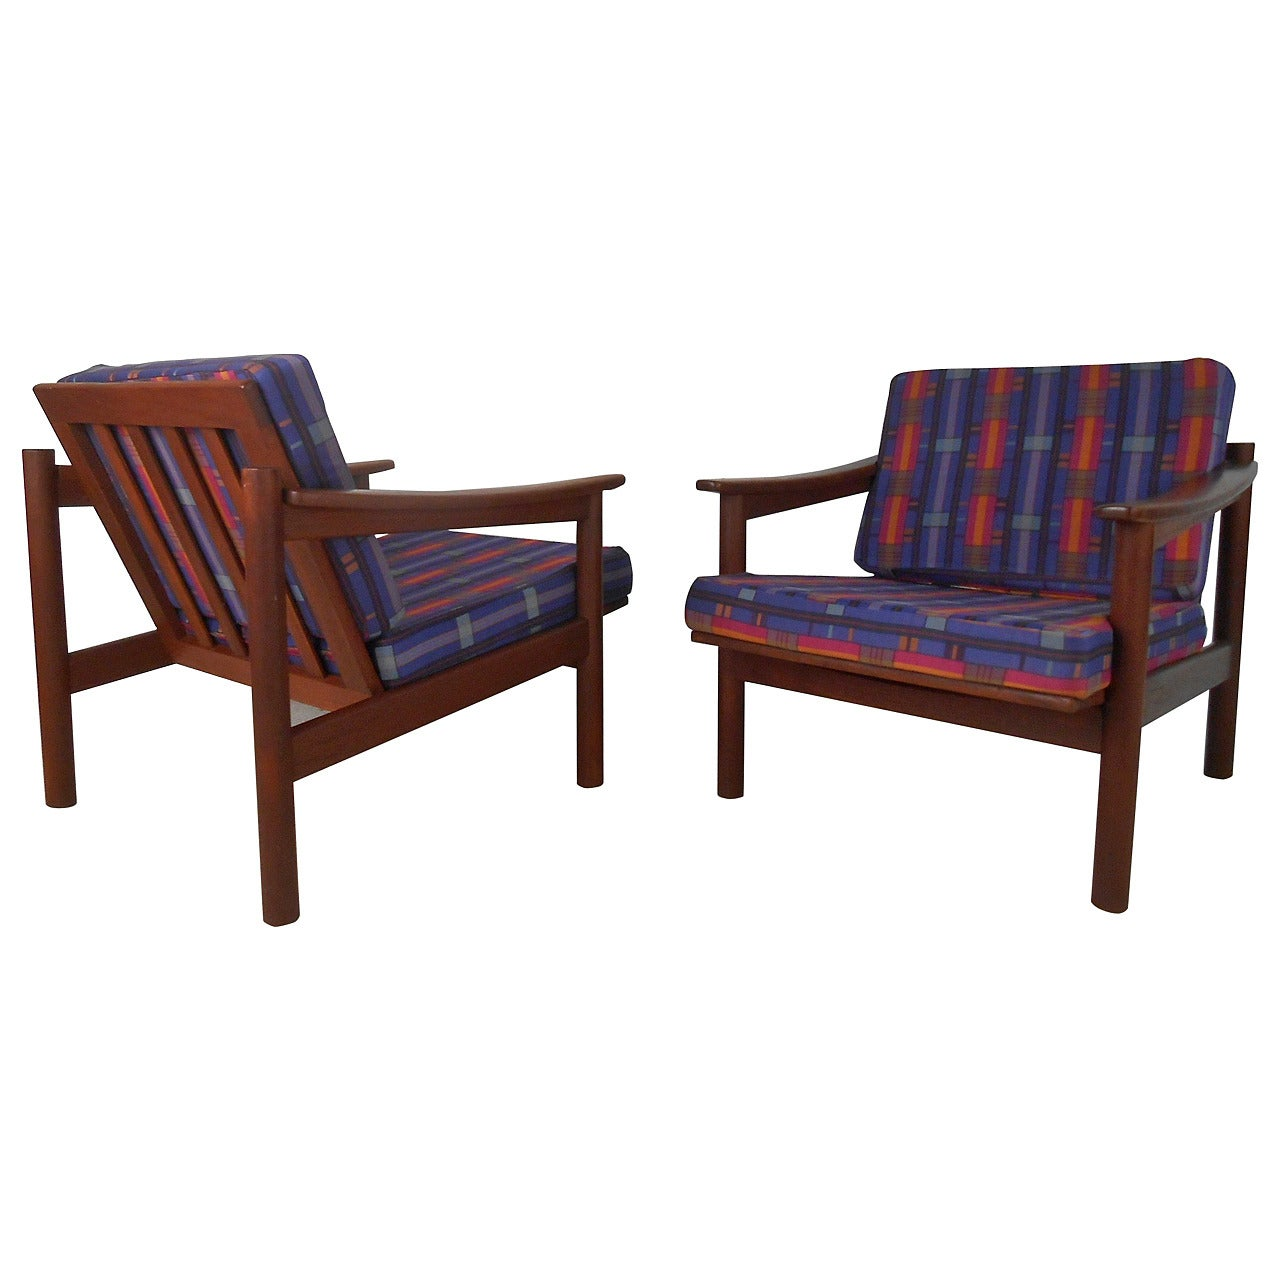 Pair of Vintage Danish Lounge Chairs